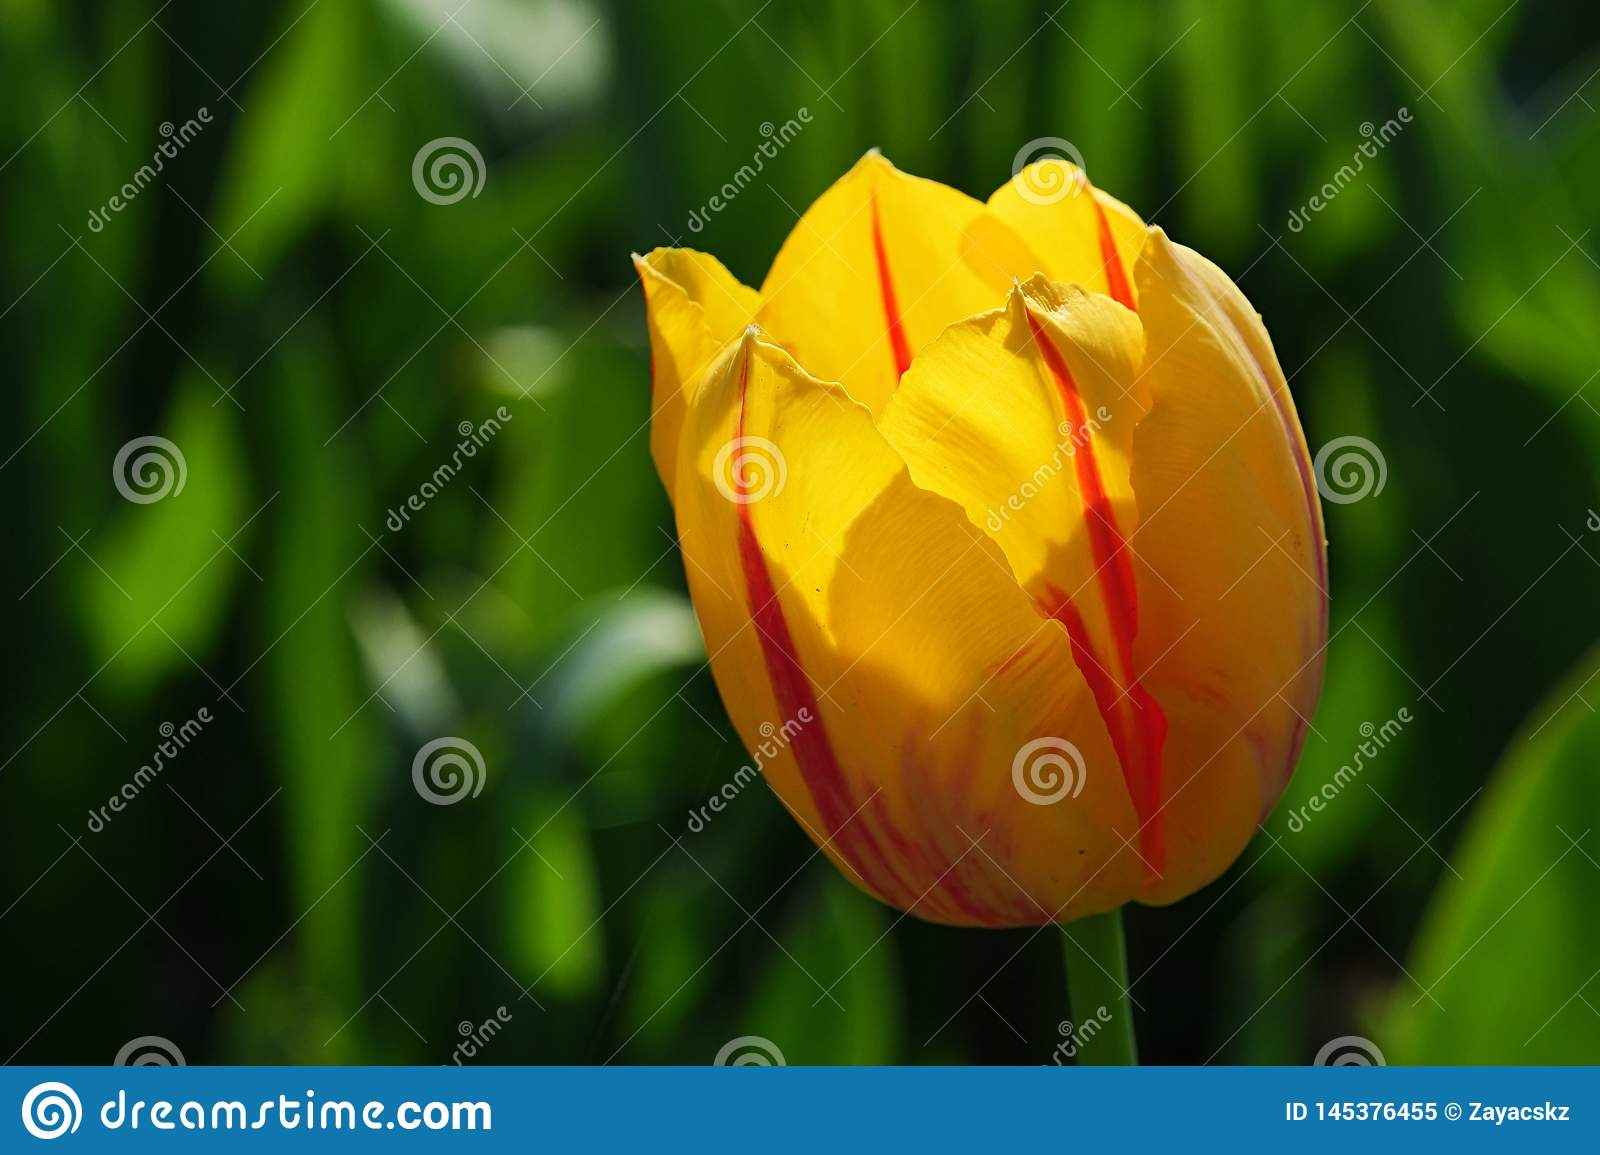 Yellow tulip flower with red vertical stripes on petals, hybrid name Twinkle